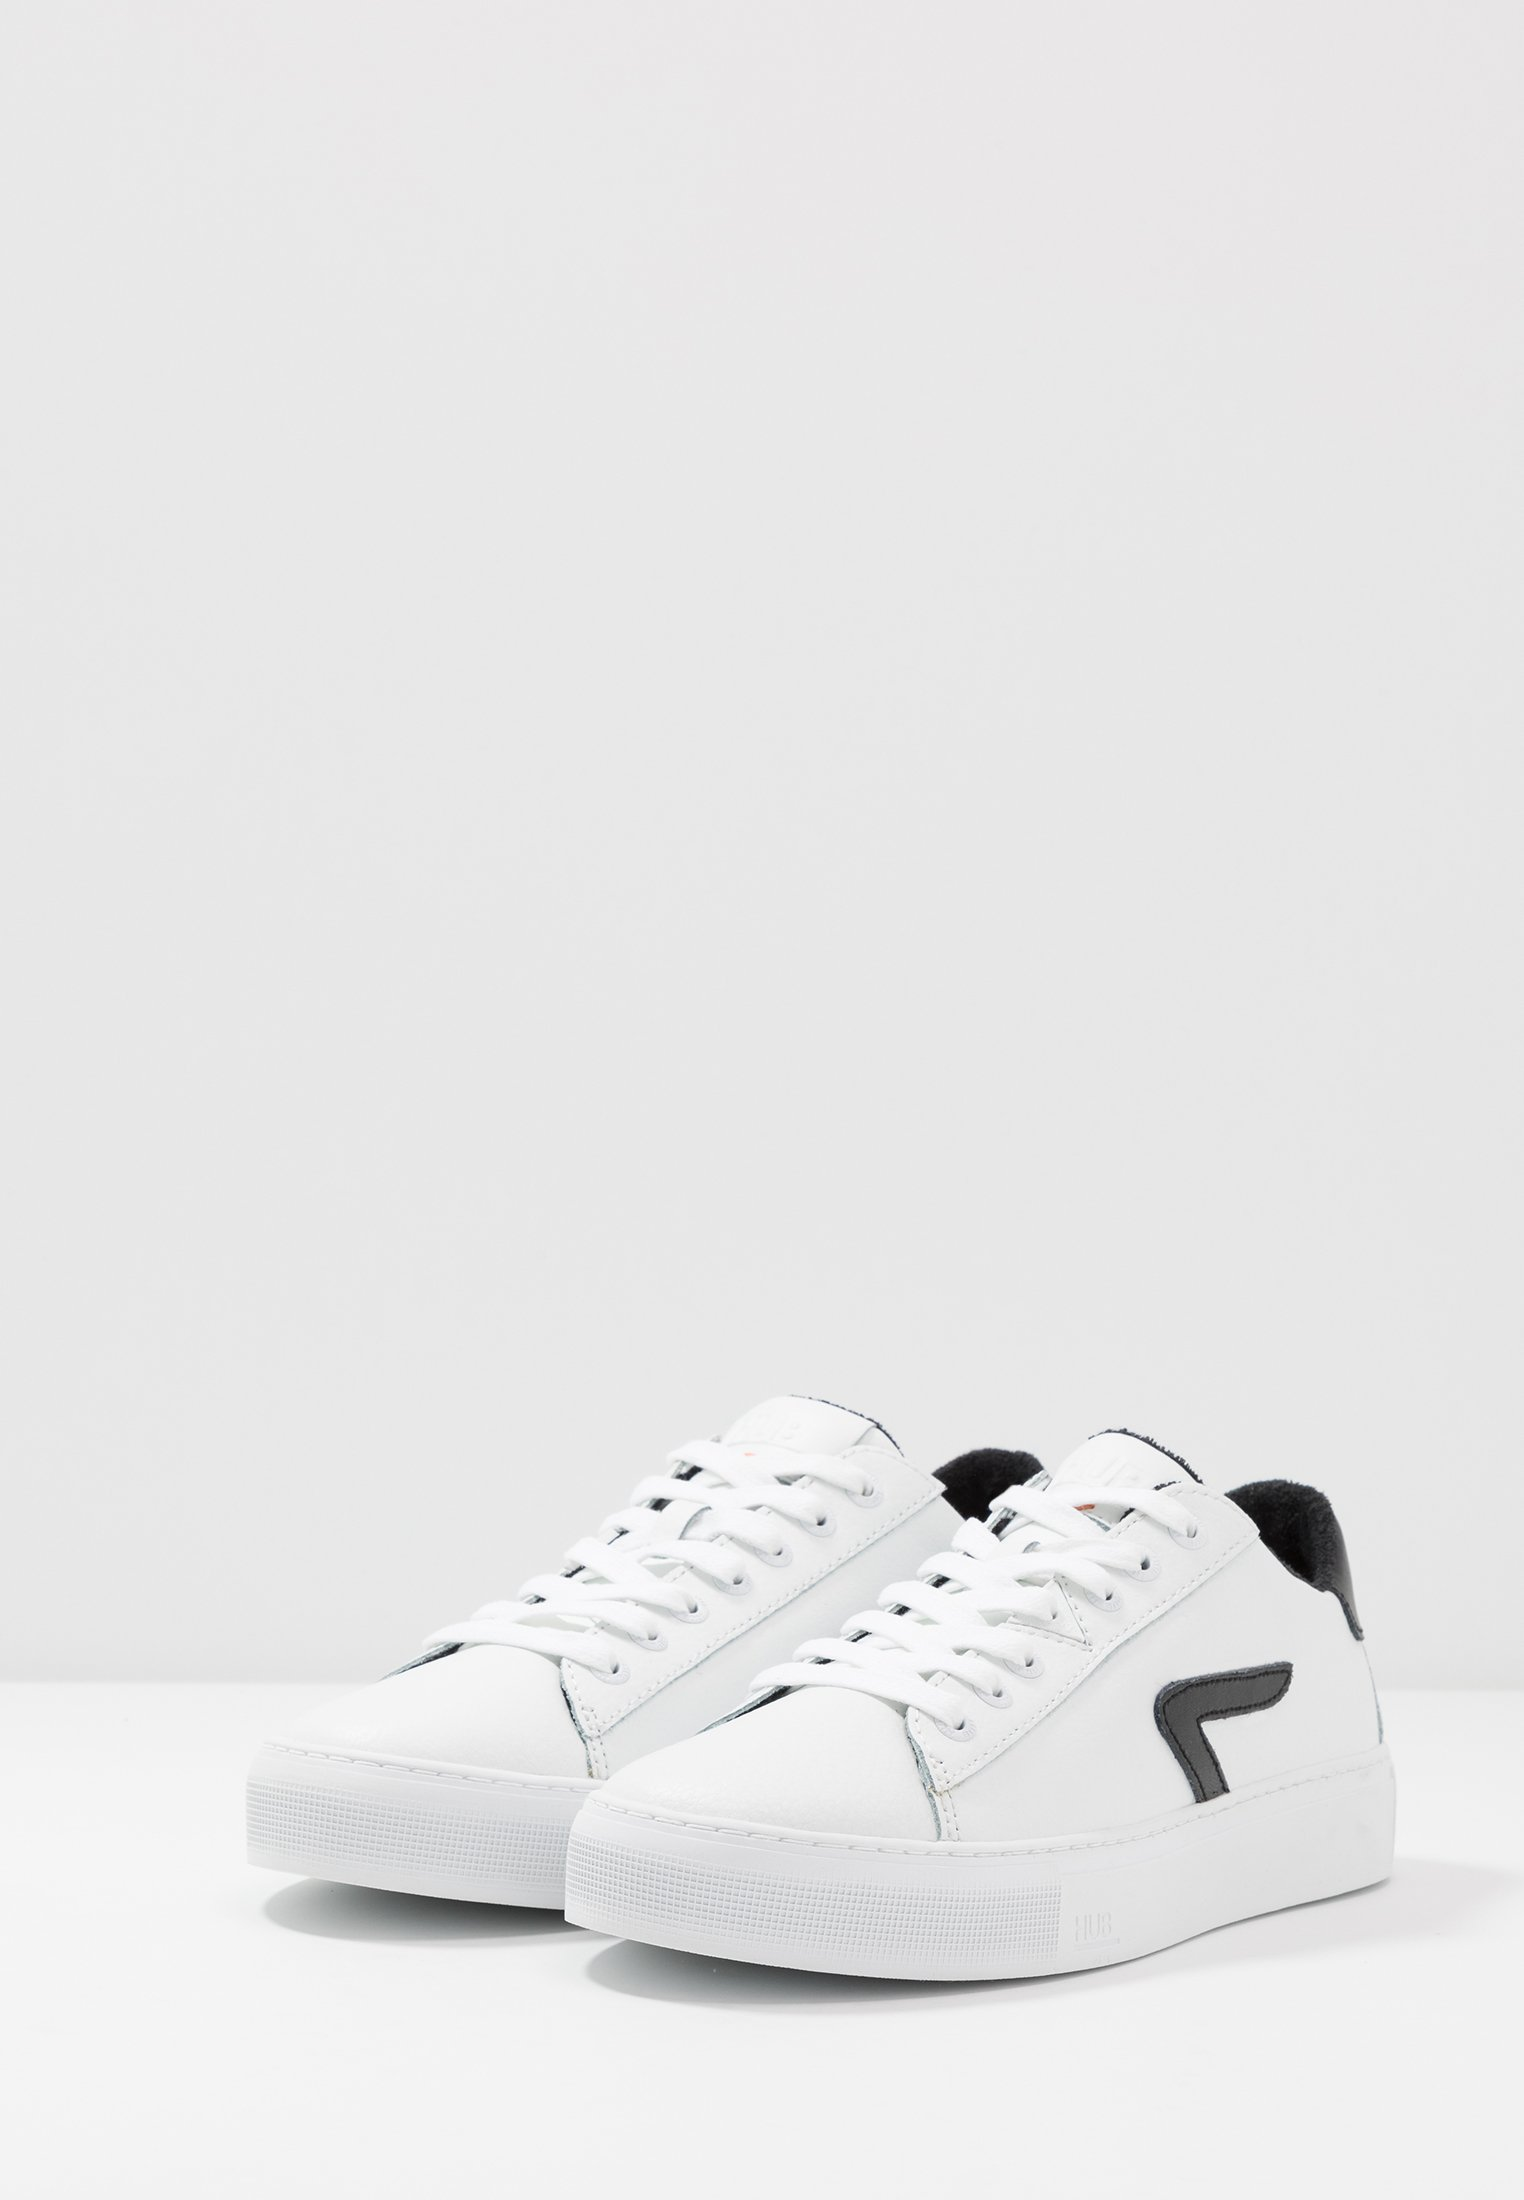 HUB HOOK  - Sneaker low - white/black/weiß - Herrenschuhe GFrcQ